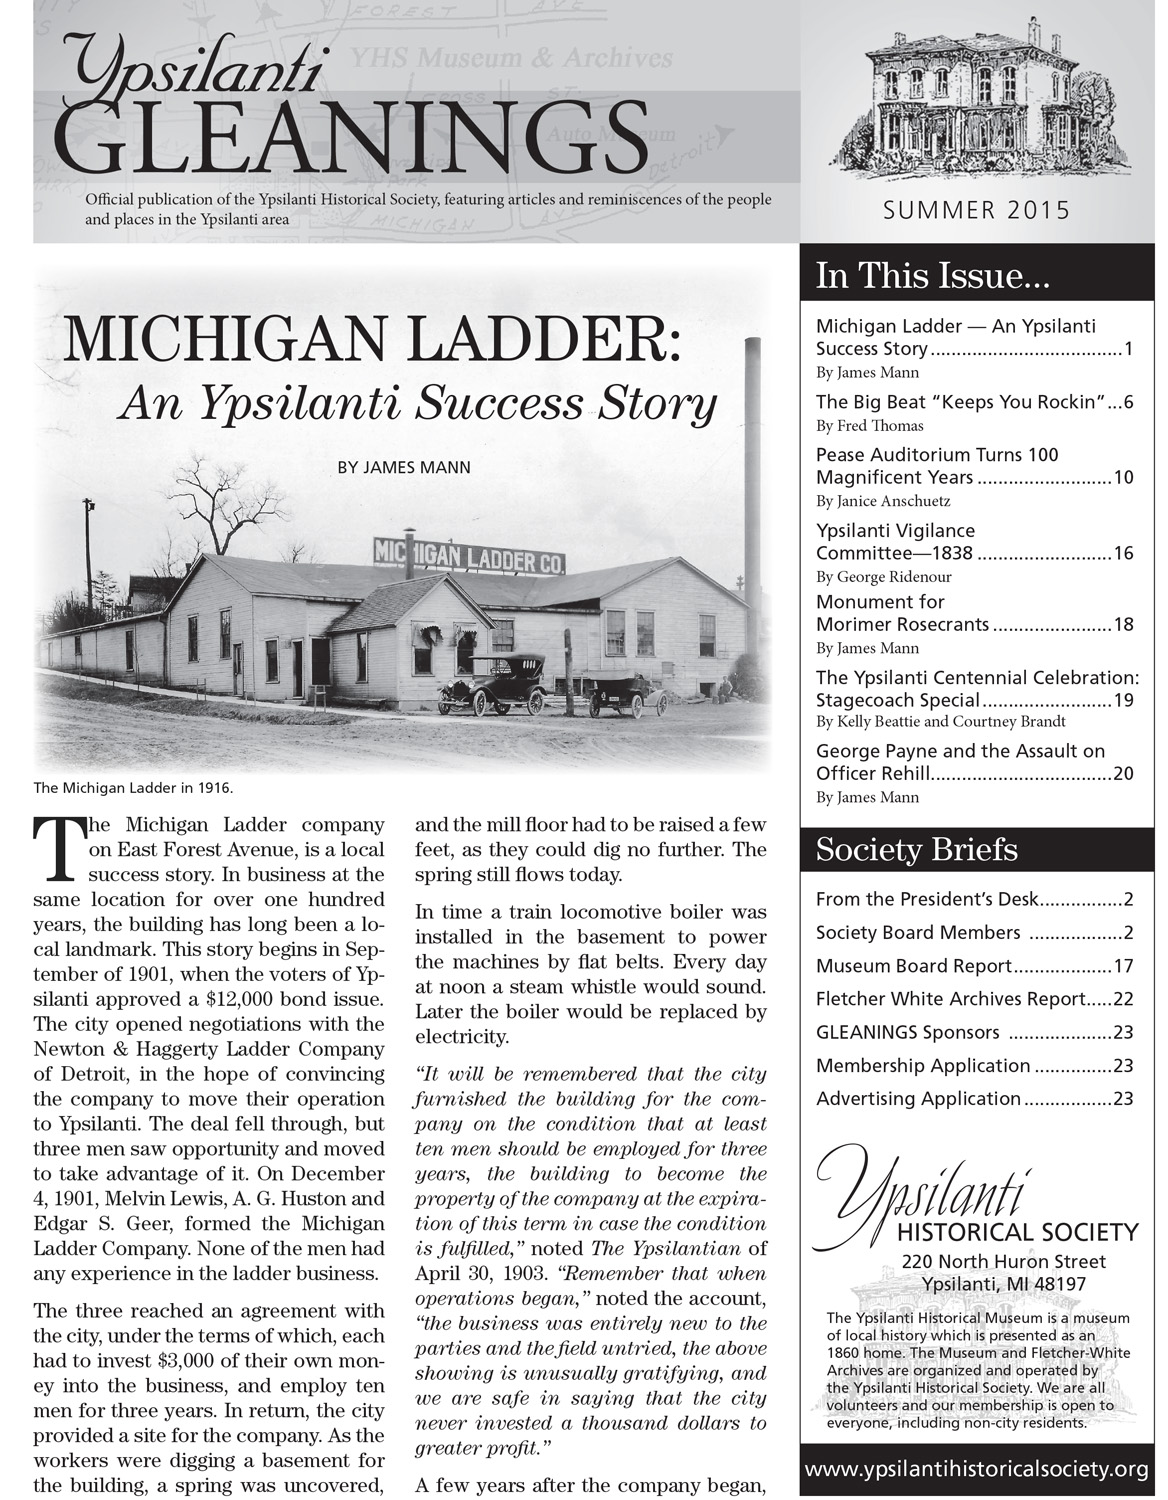 Michigan Ladder: An Ypsilanti Success Story image